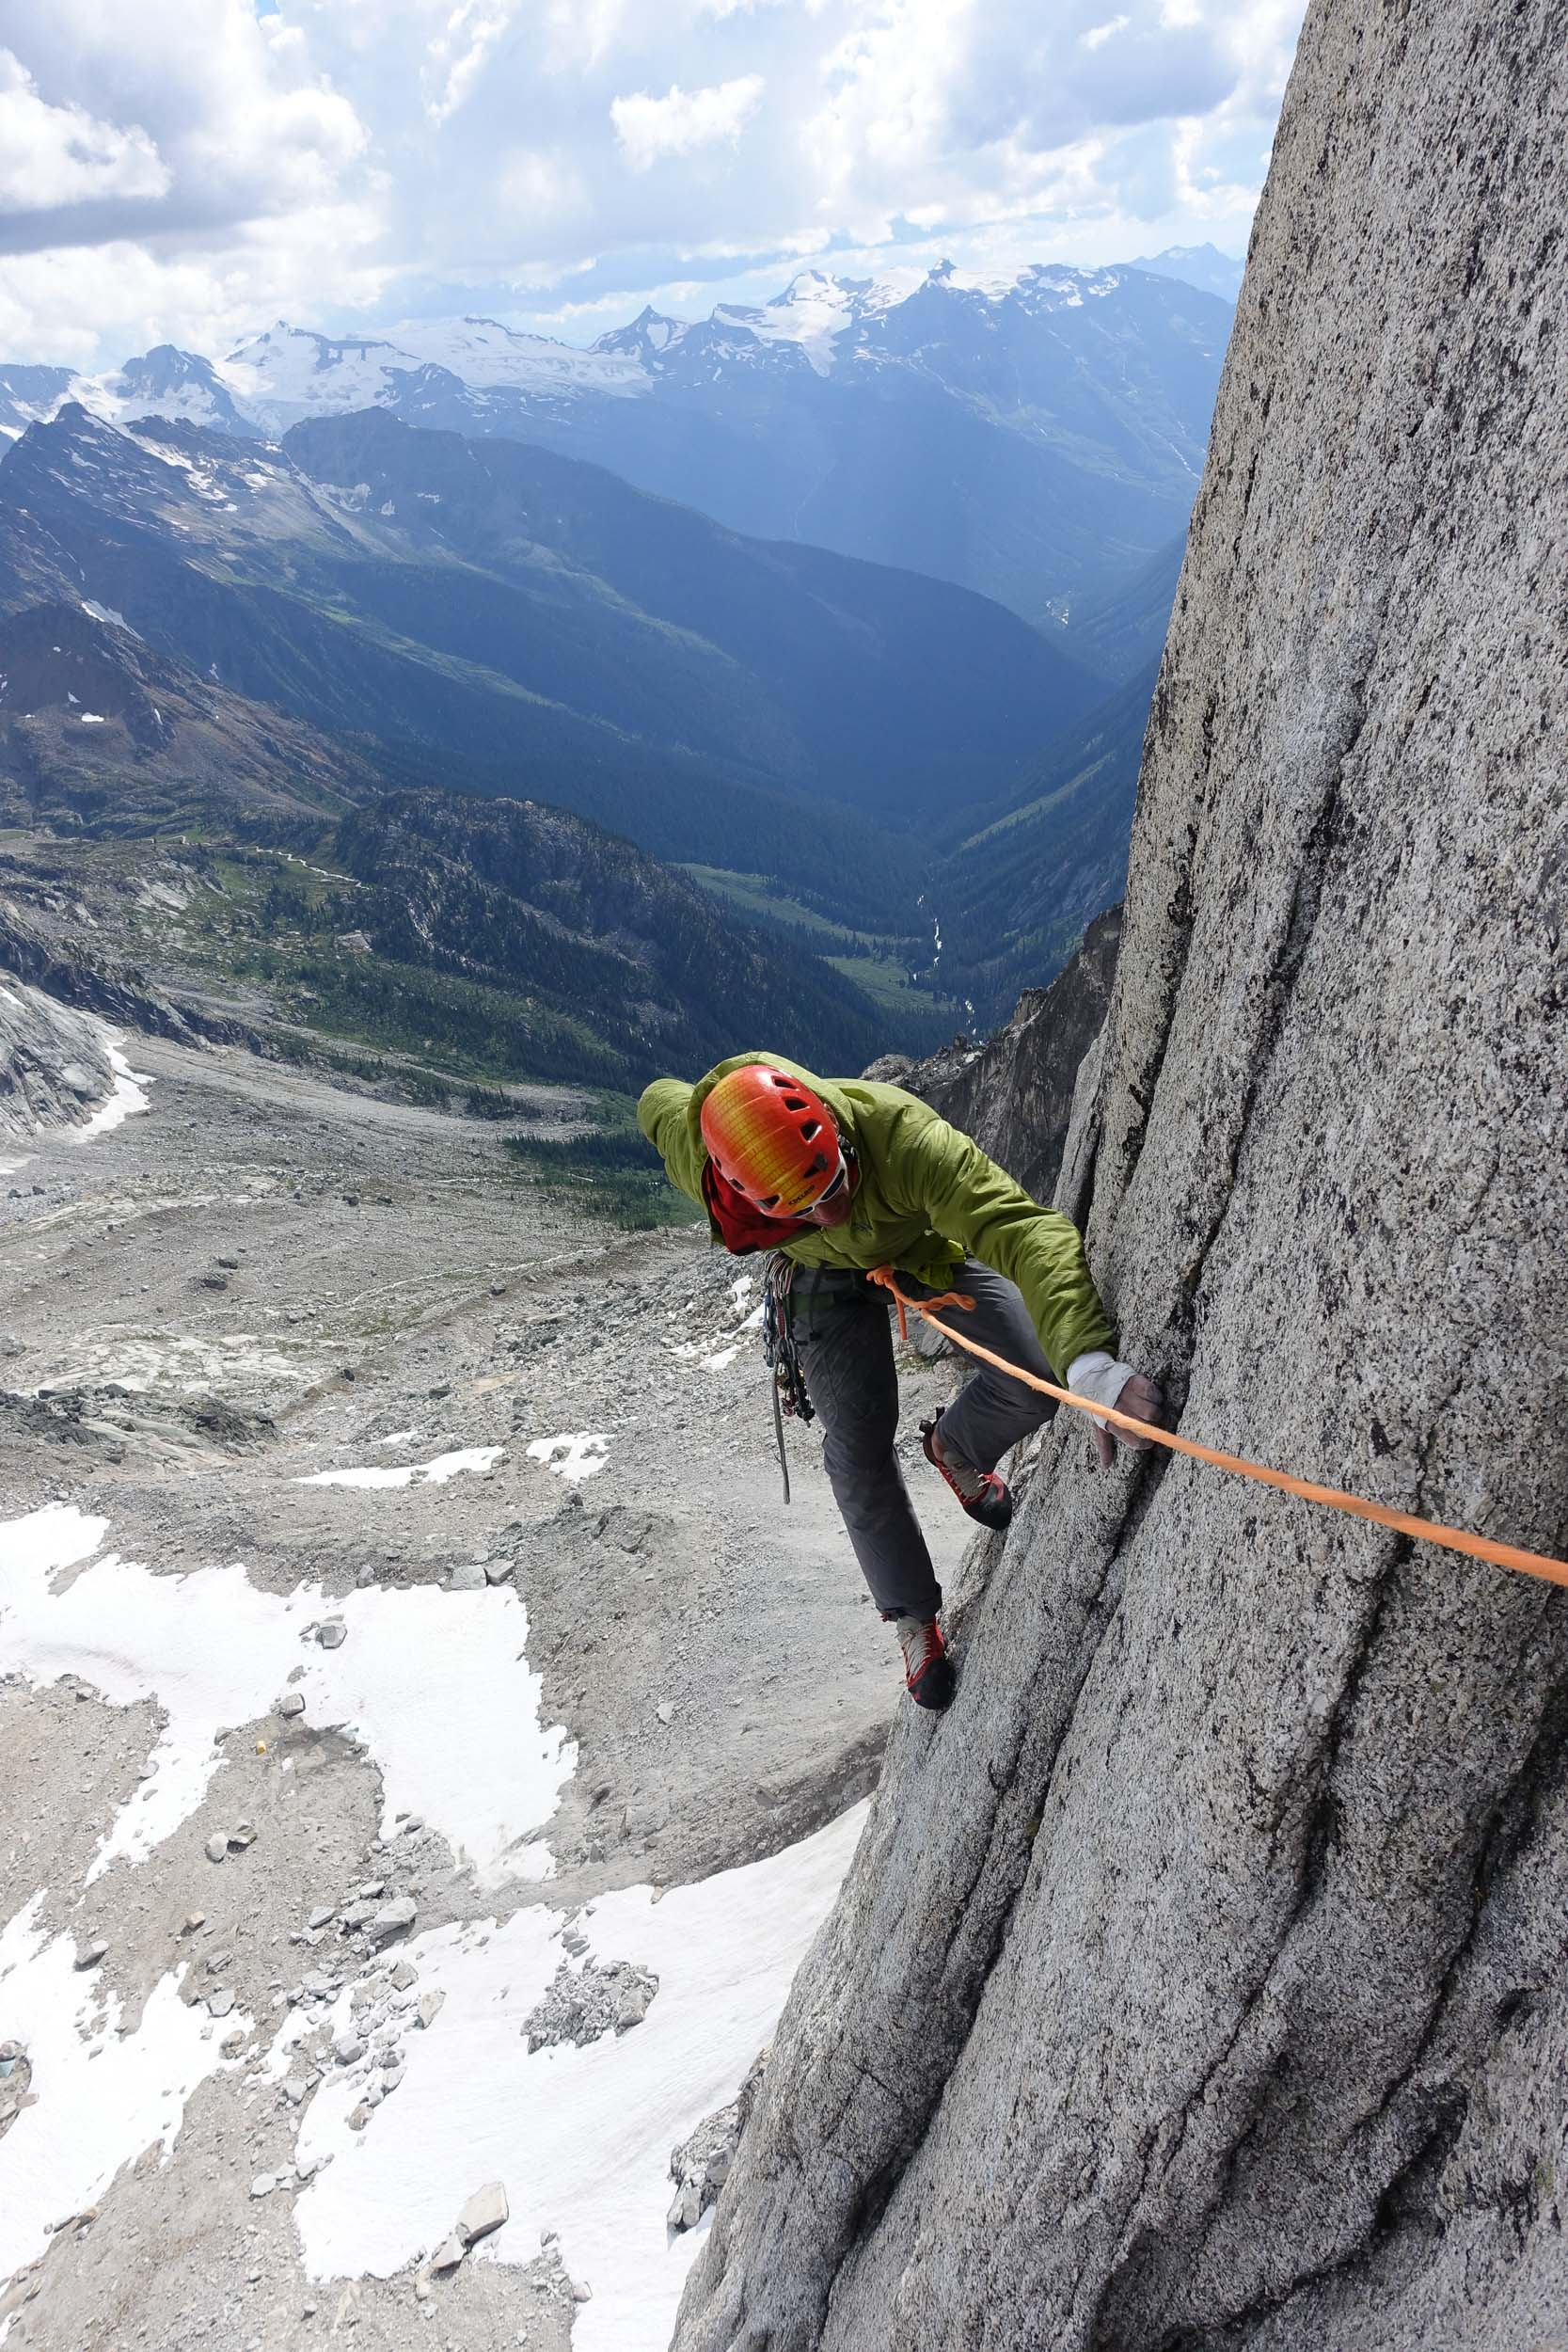 Jesse following one of the pitches on New Millennium. Photo Maury Birdwell